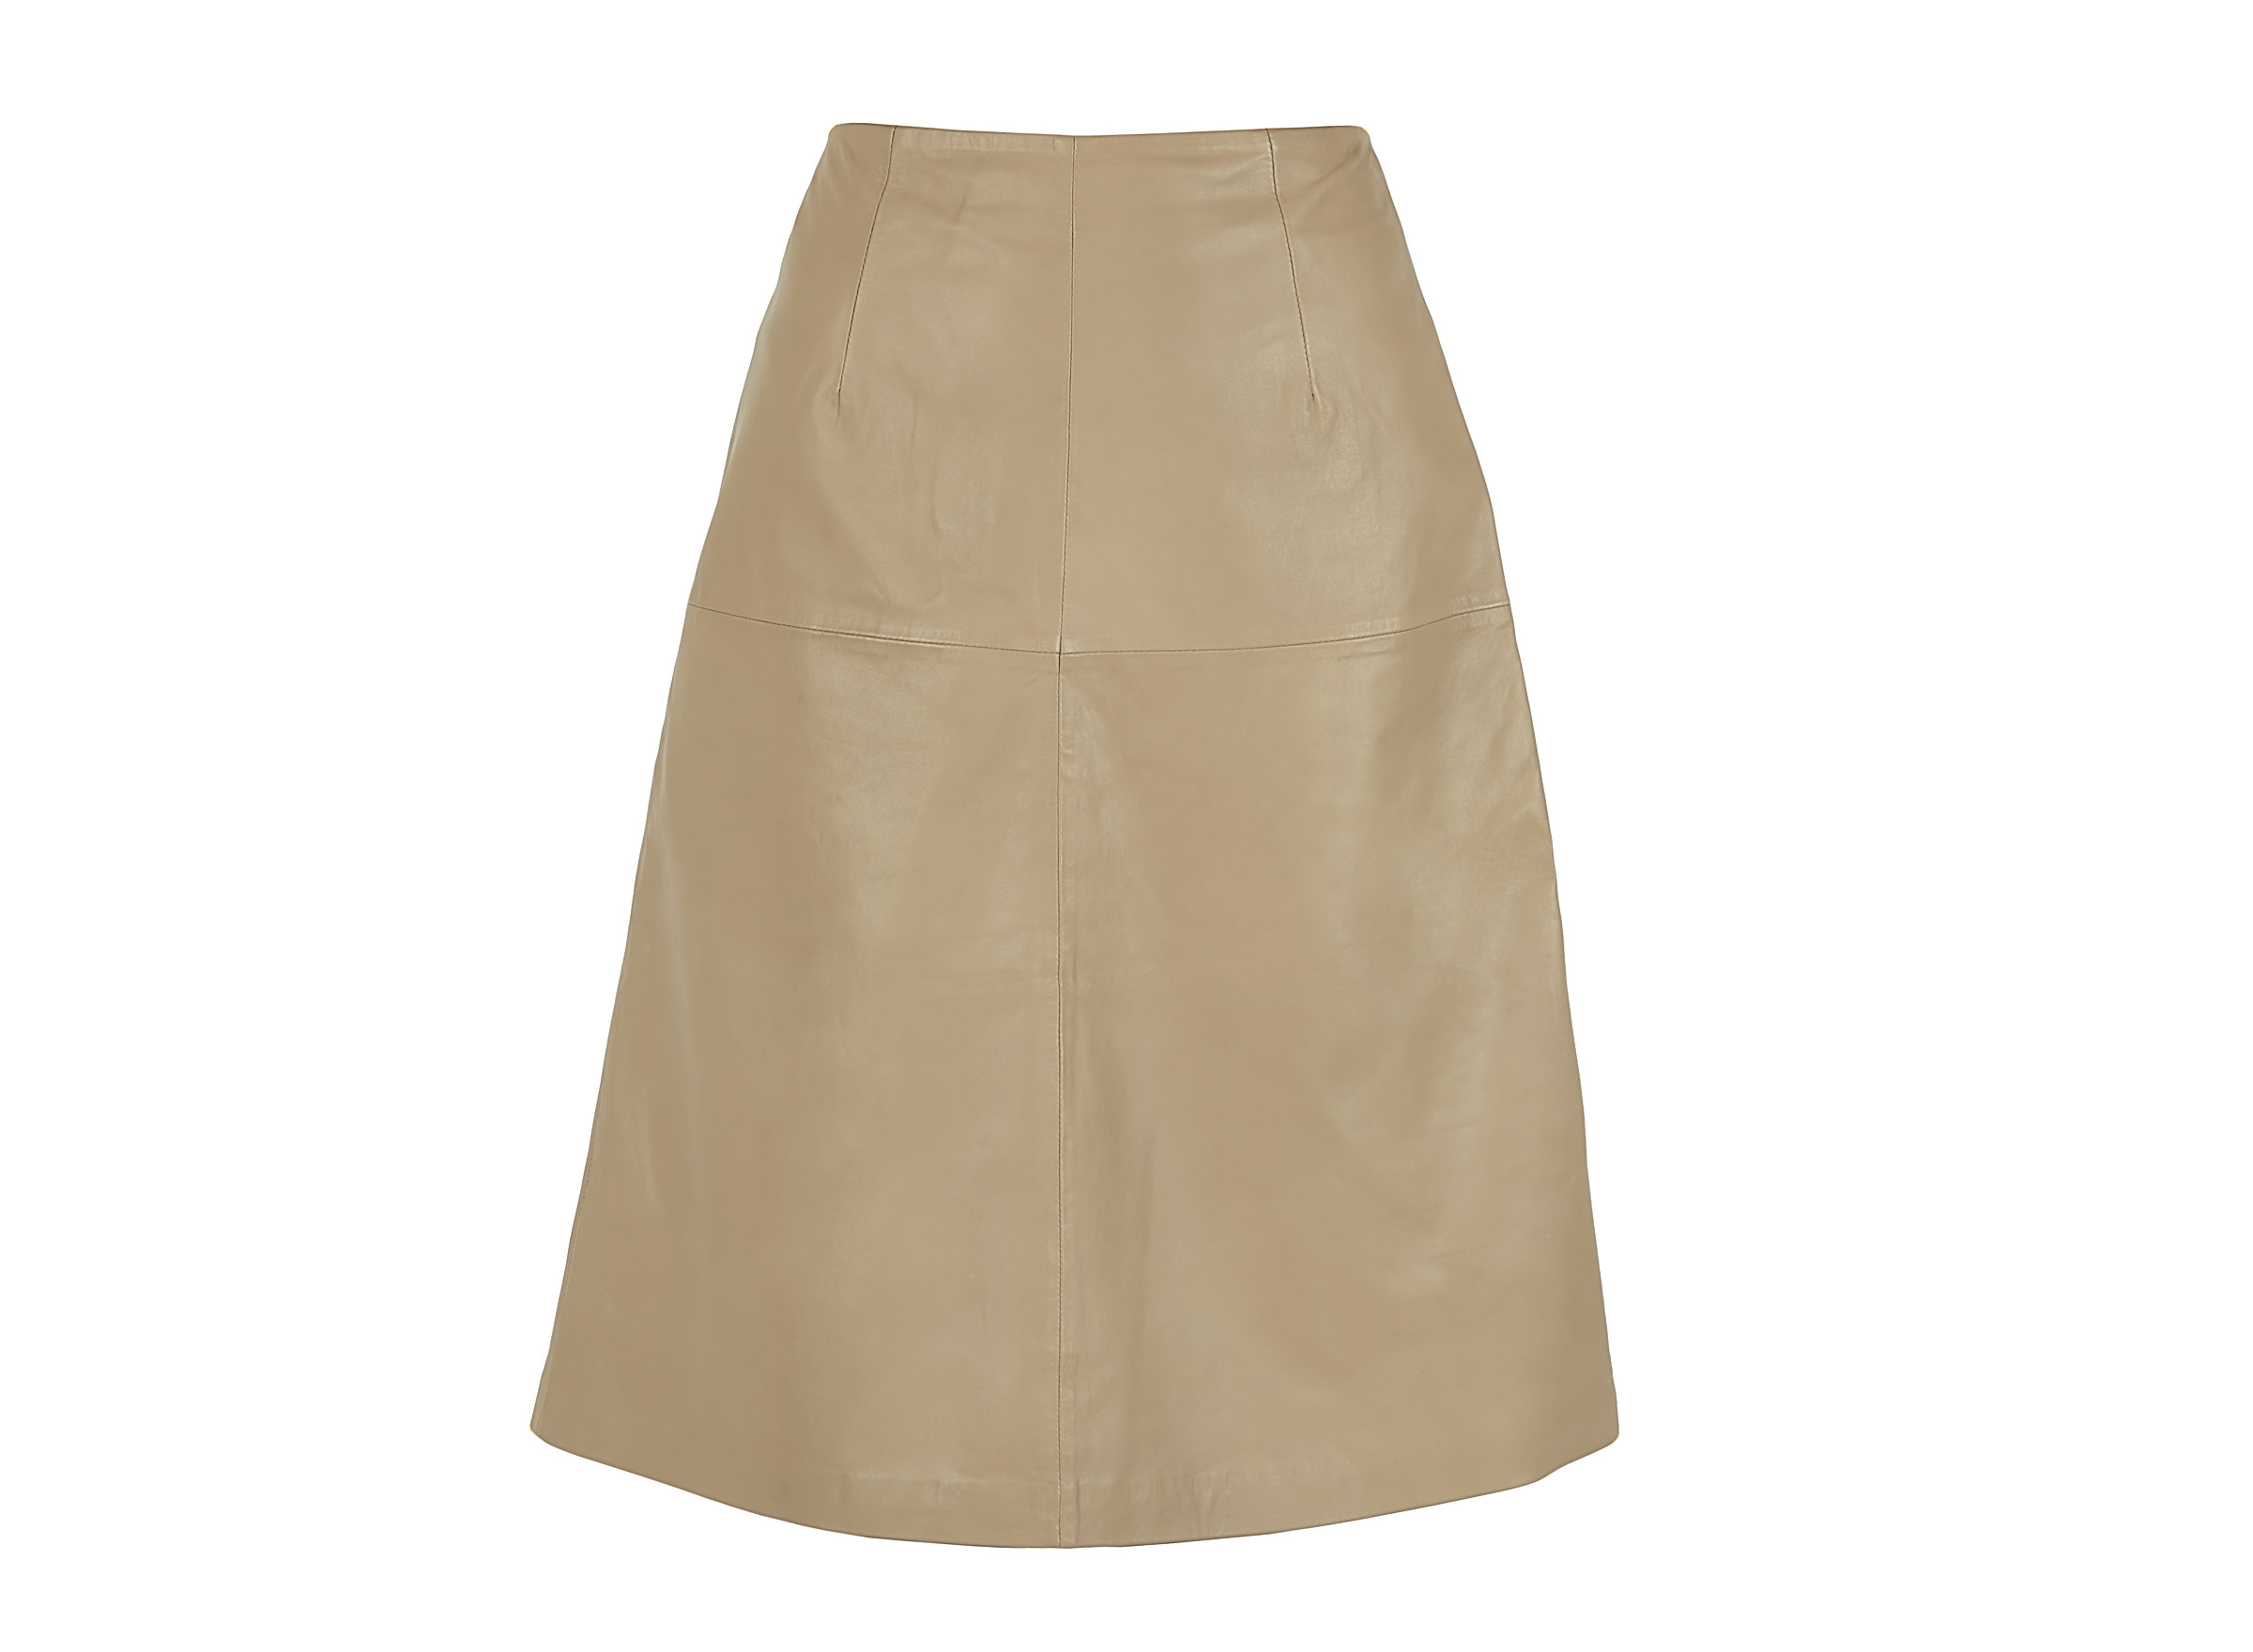 Chabo Bags - Leather Skirt Cicely - Sand 36